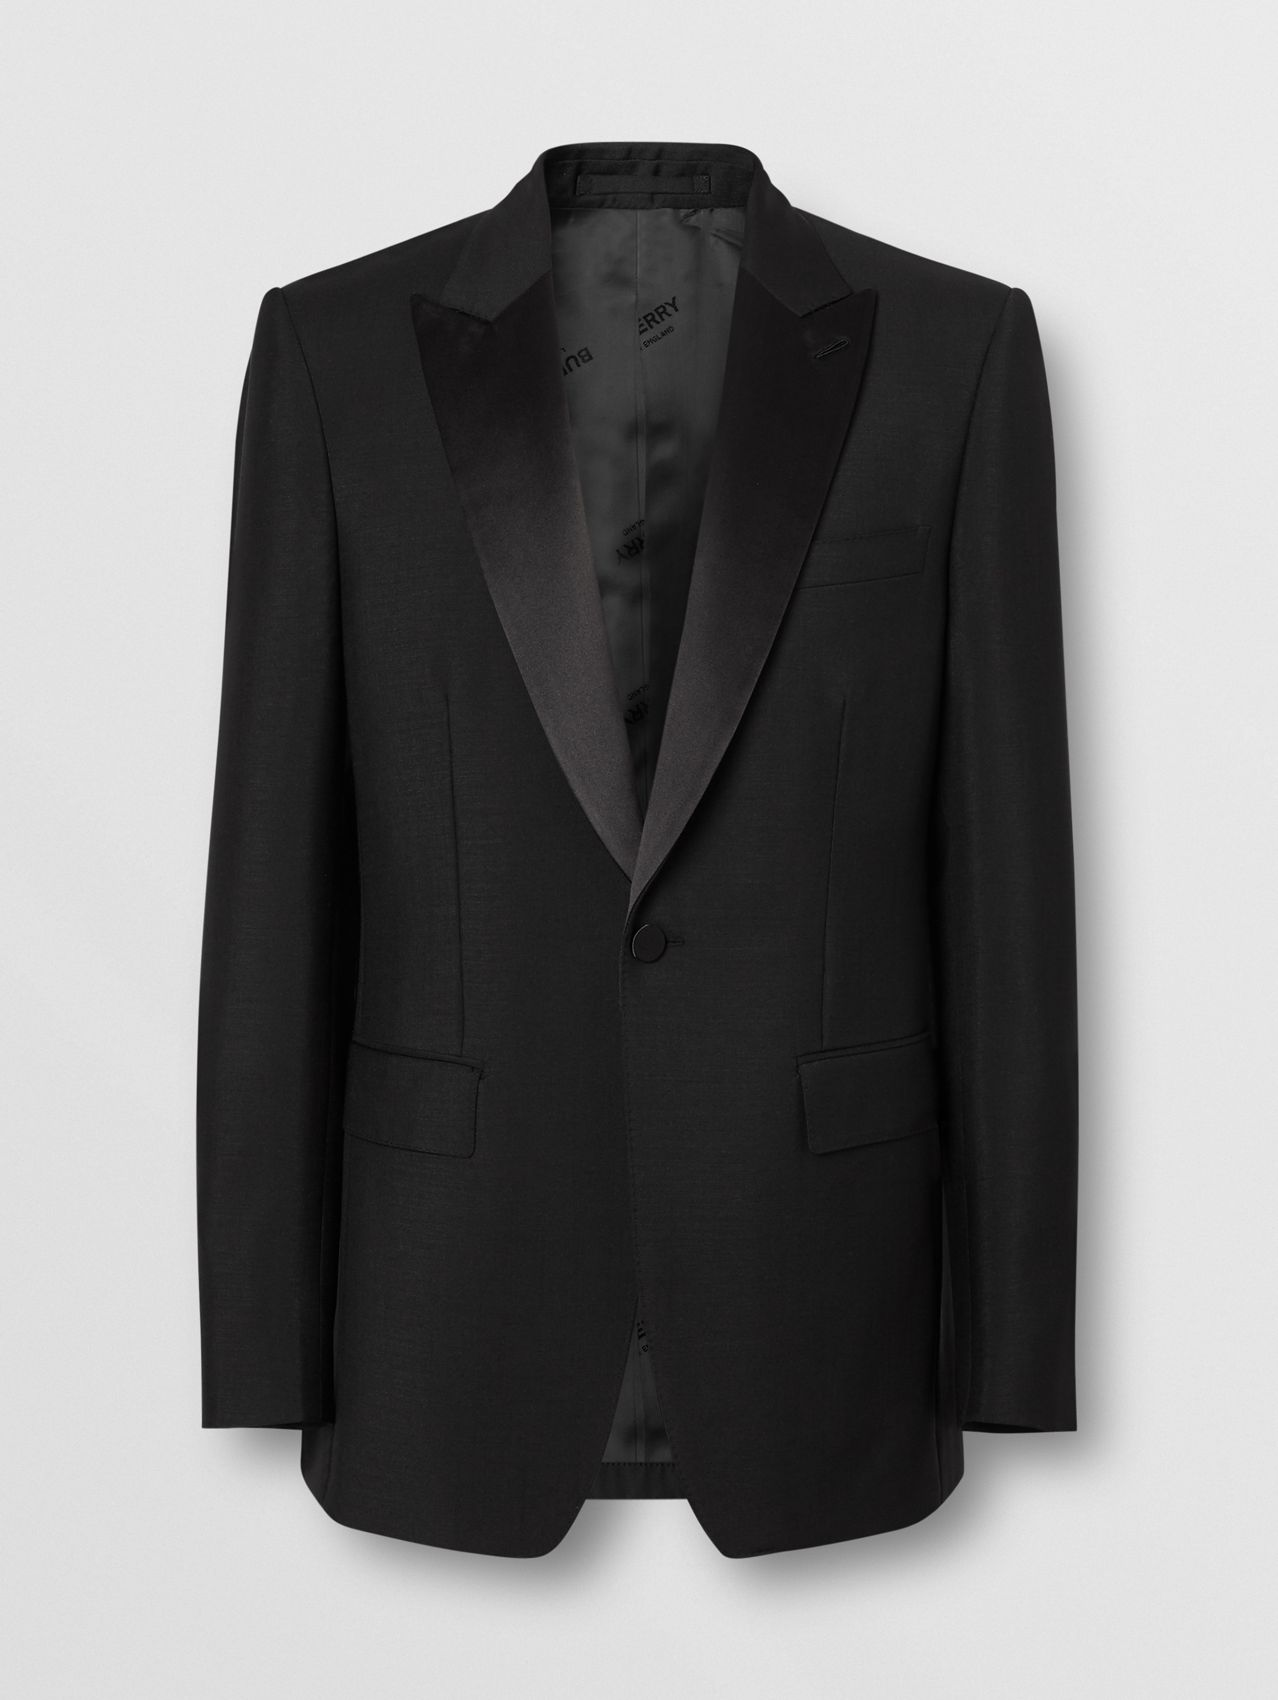 English Fit Mohair Wool Tuxedo (Black)